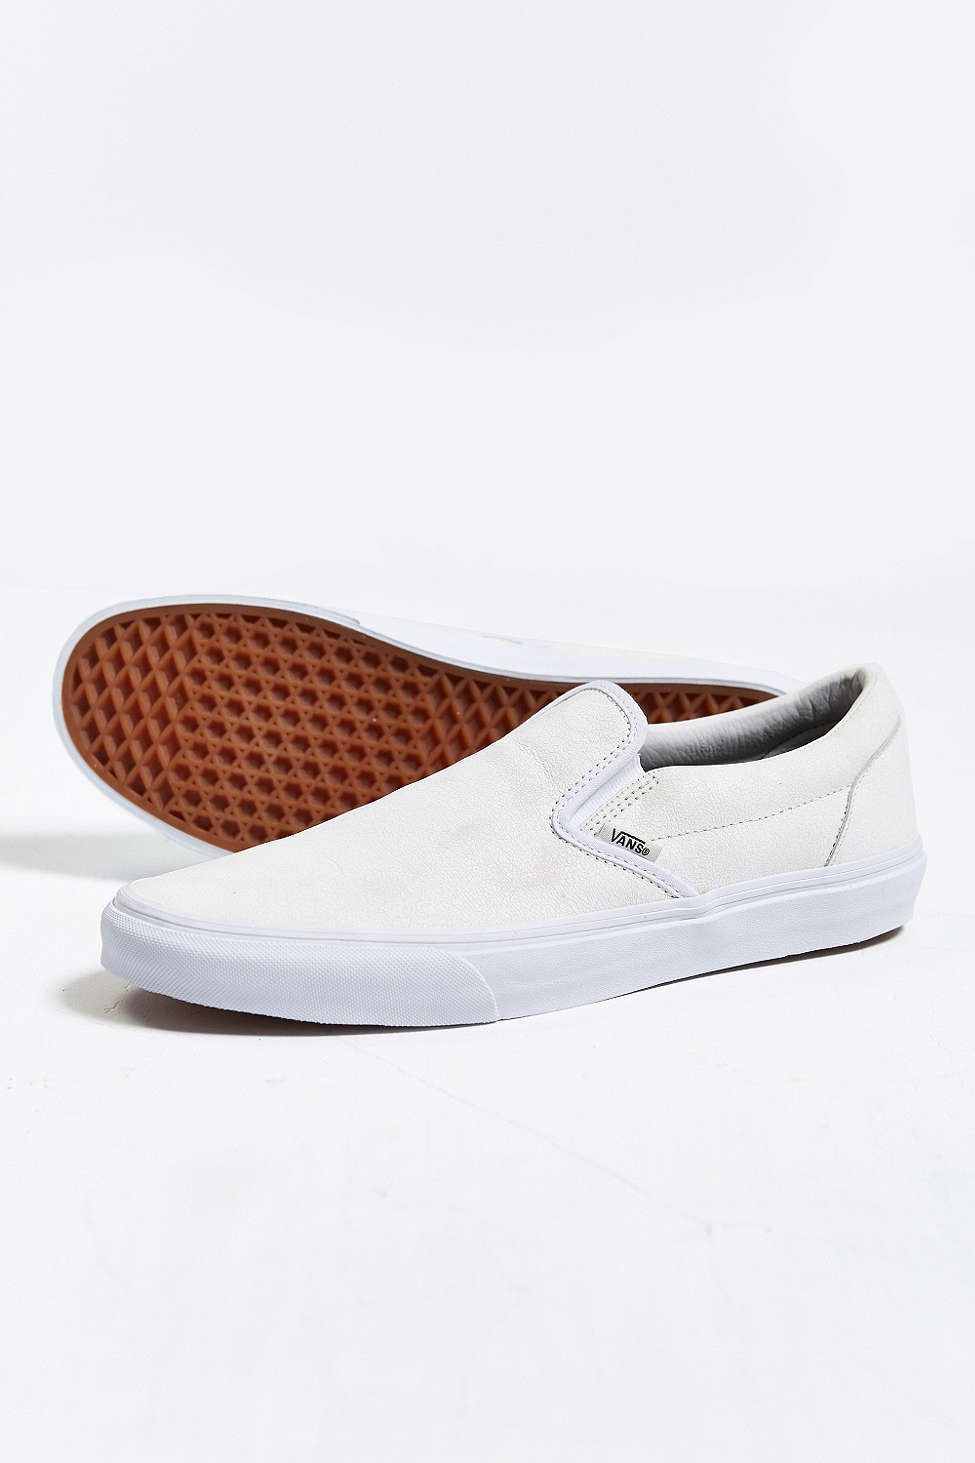 Vans, Classic Leather Slip-on, Cream,   Men's